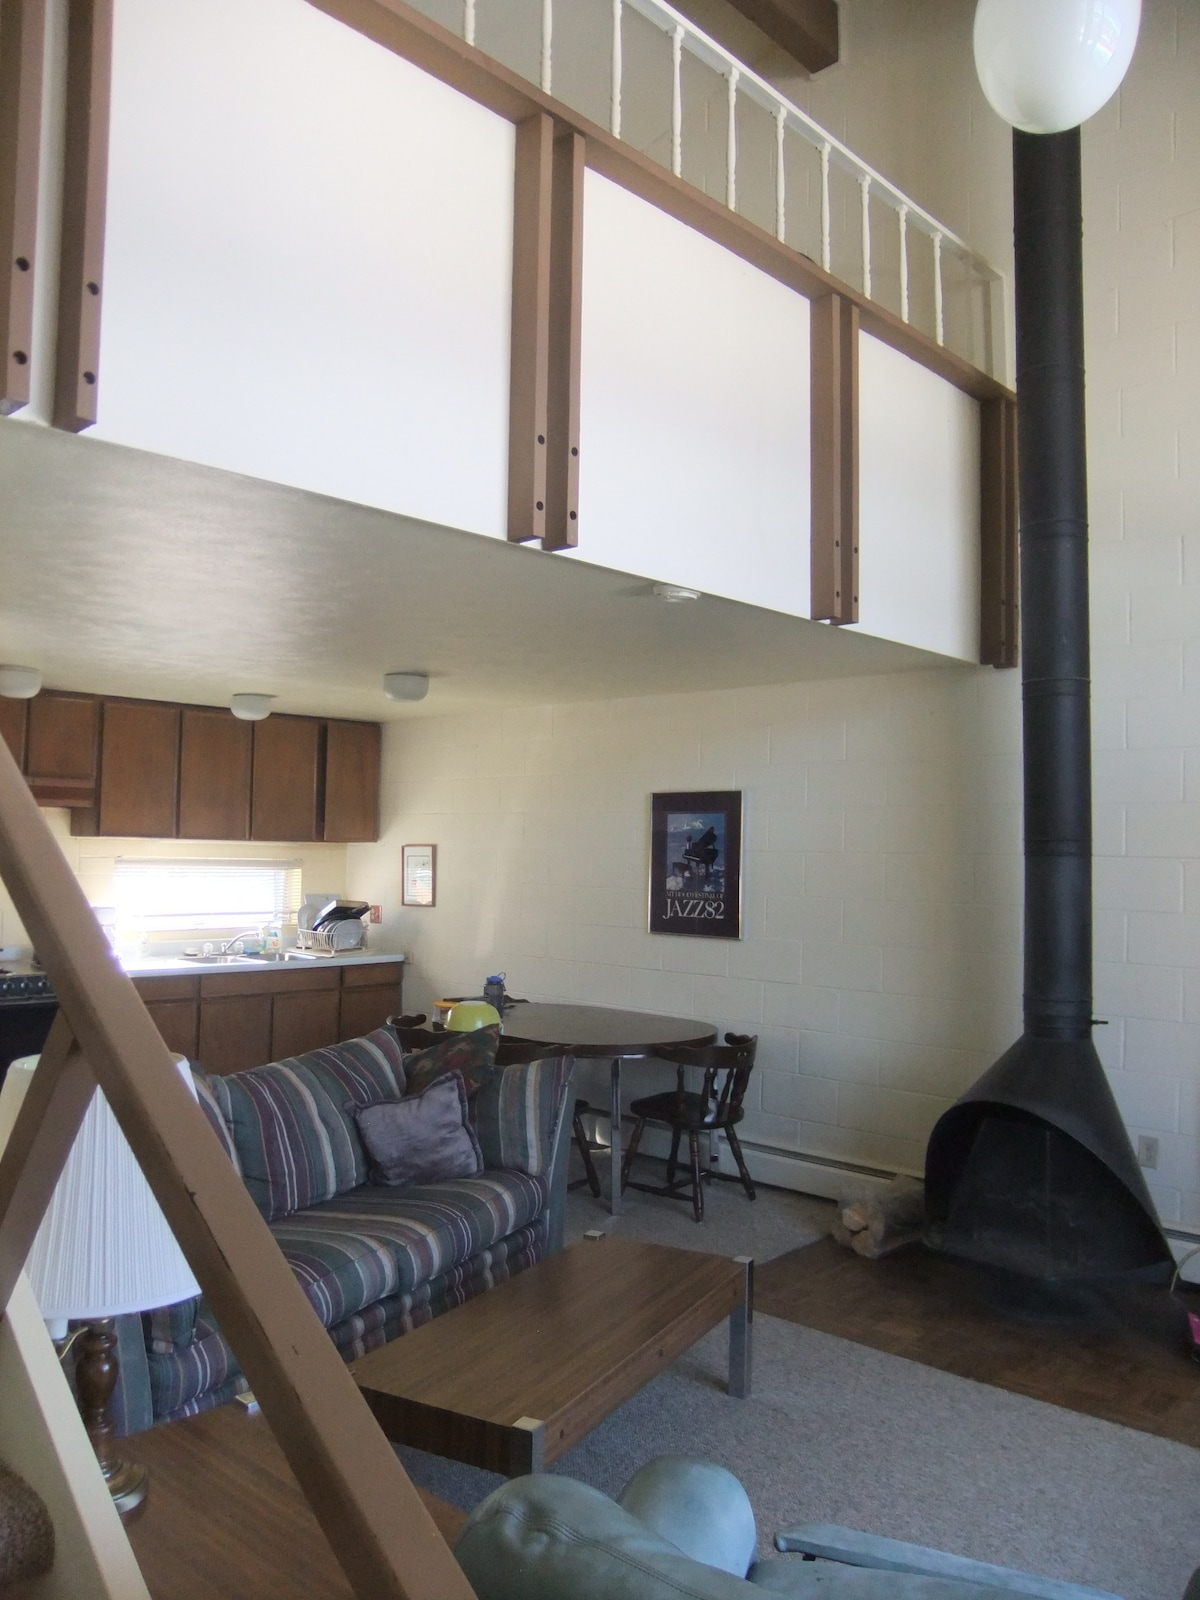 Main room with loft above